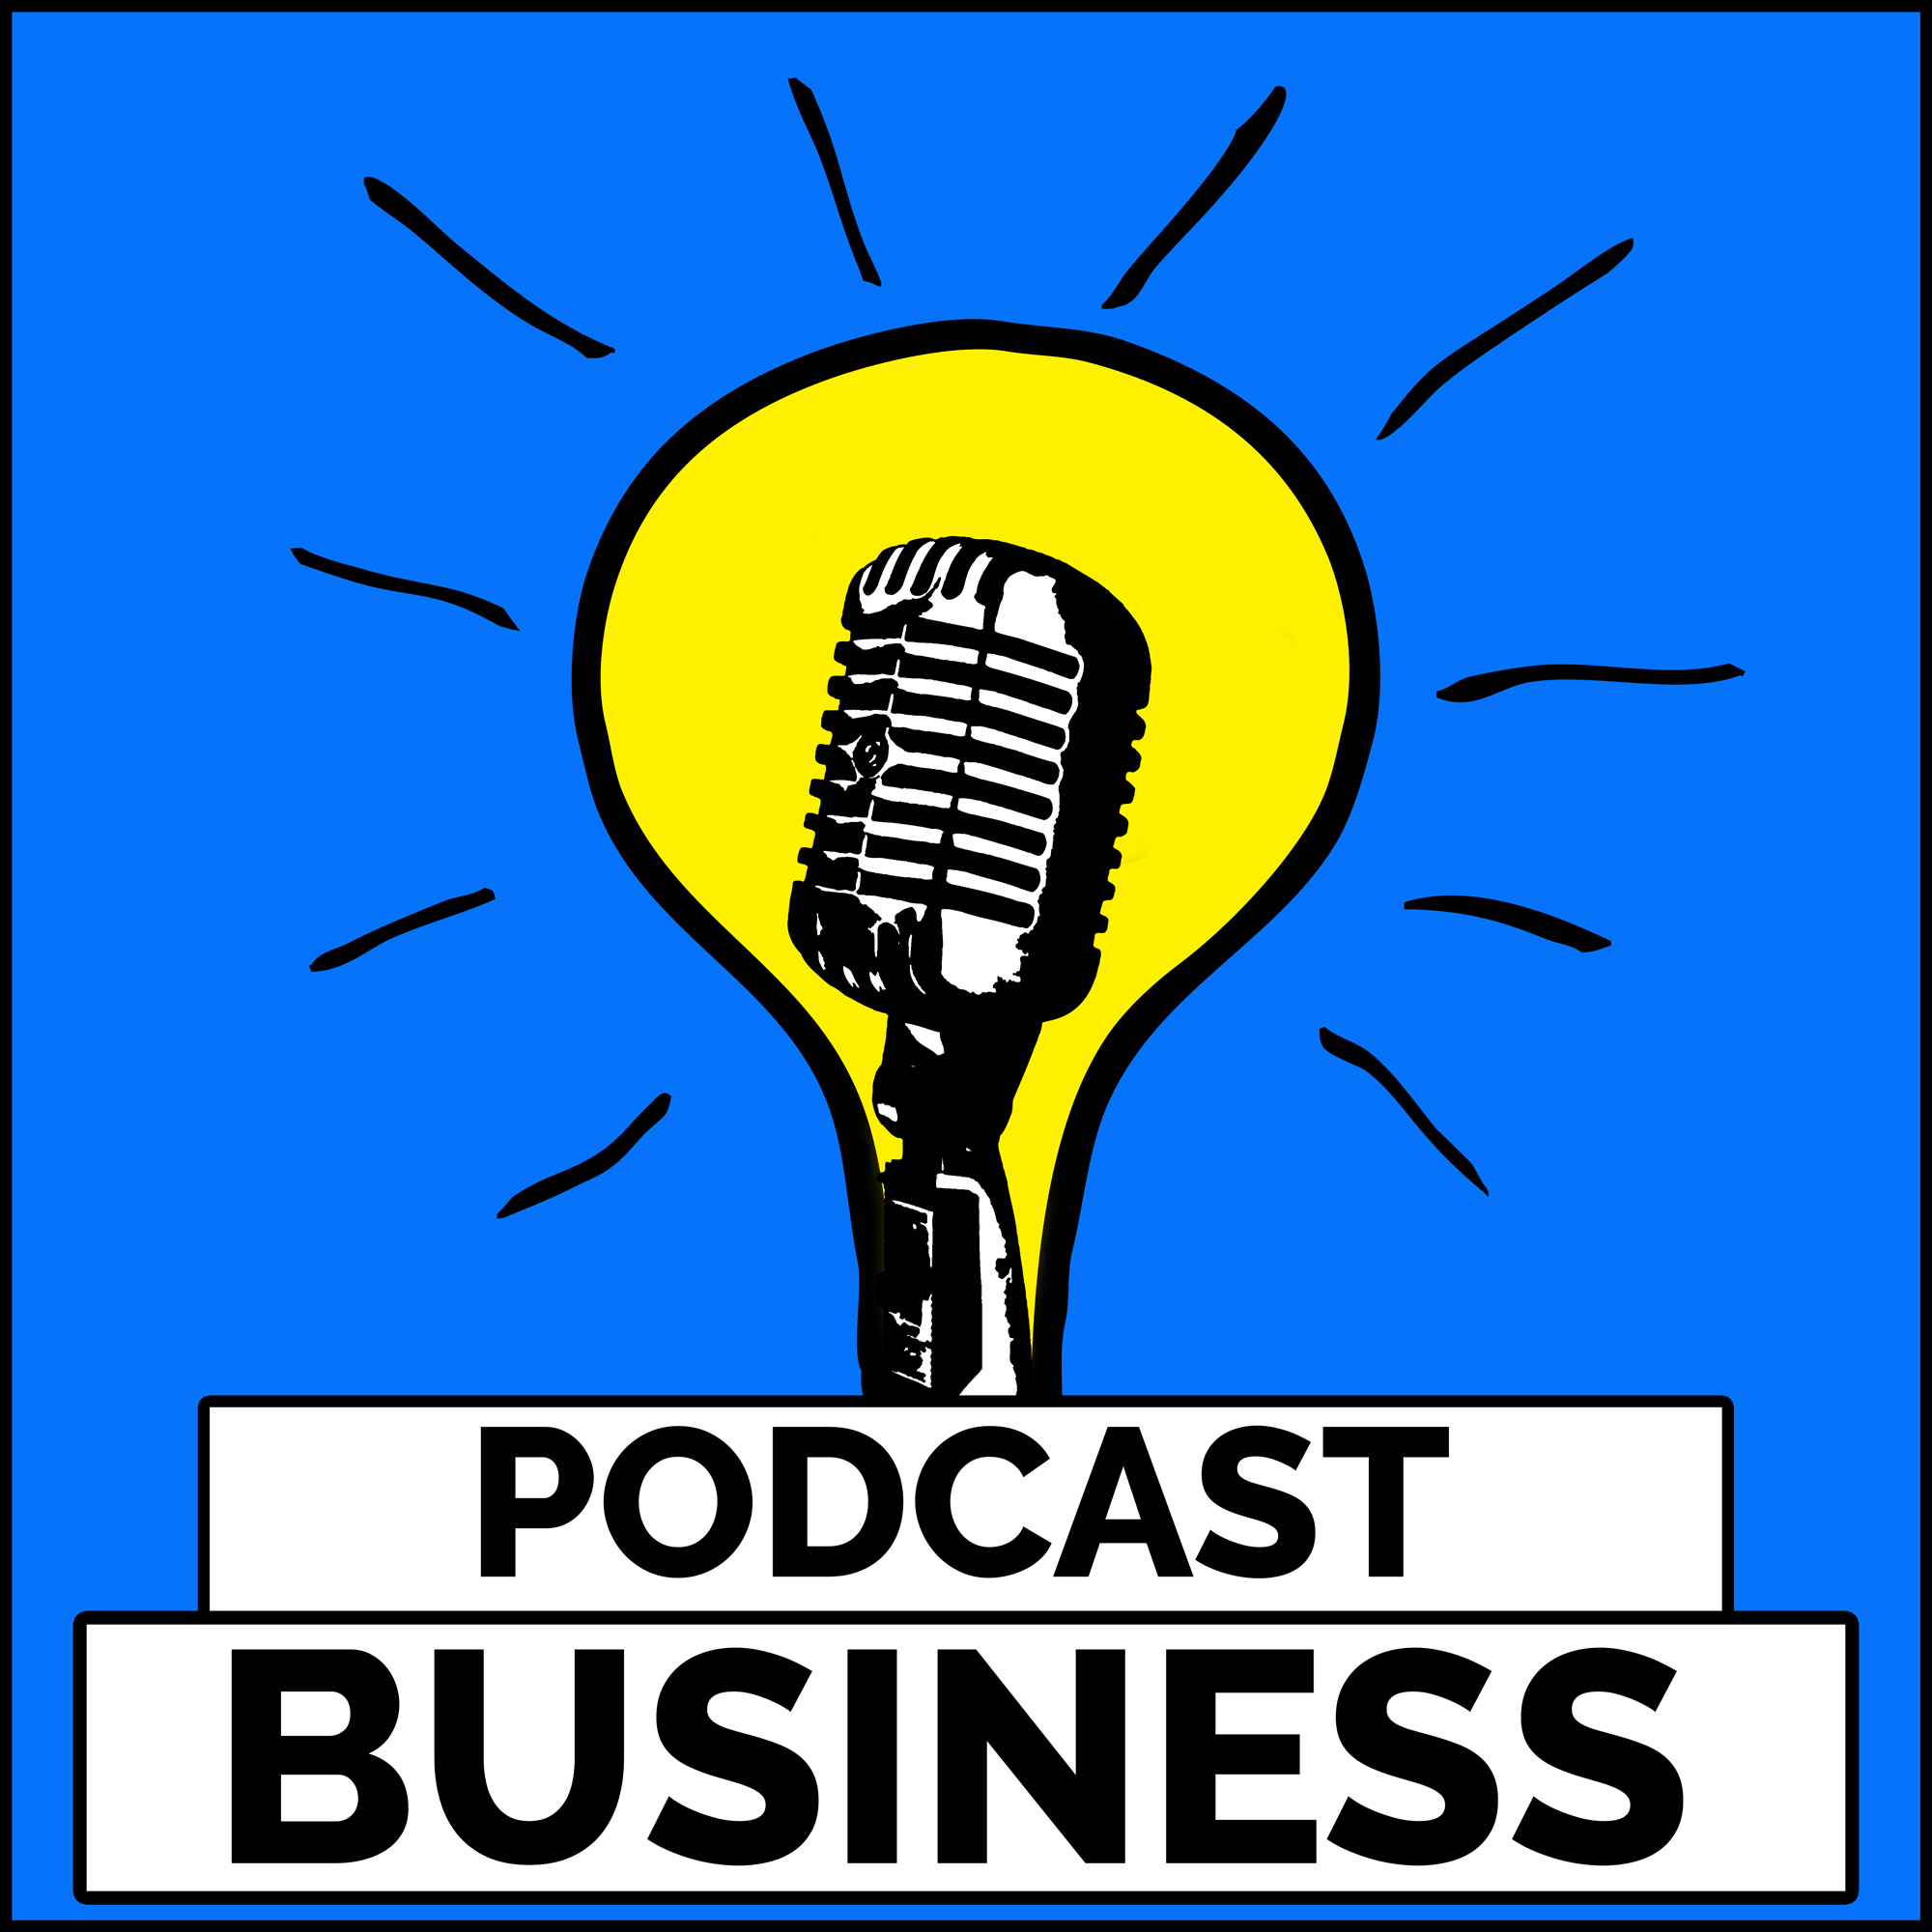 Podcast Business - Der Weg zum eigenen Podcast als Marketingkanal